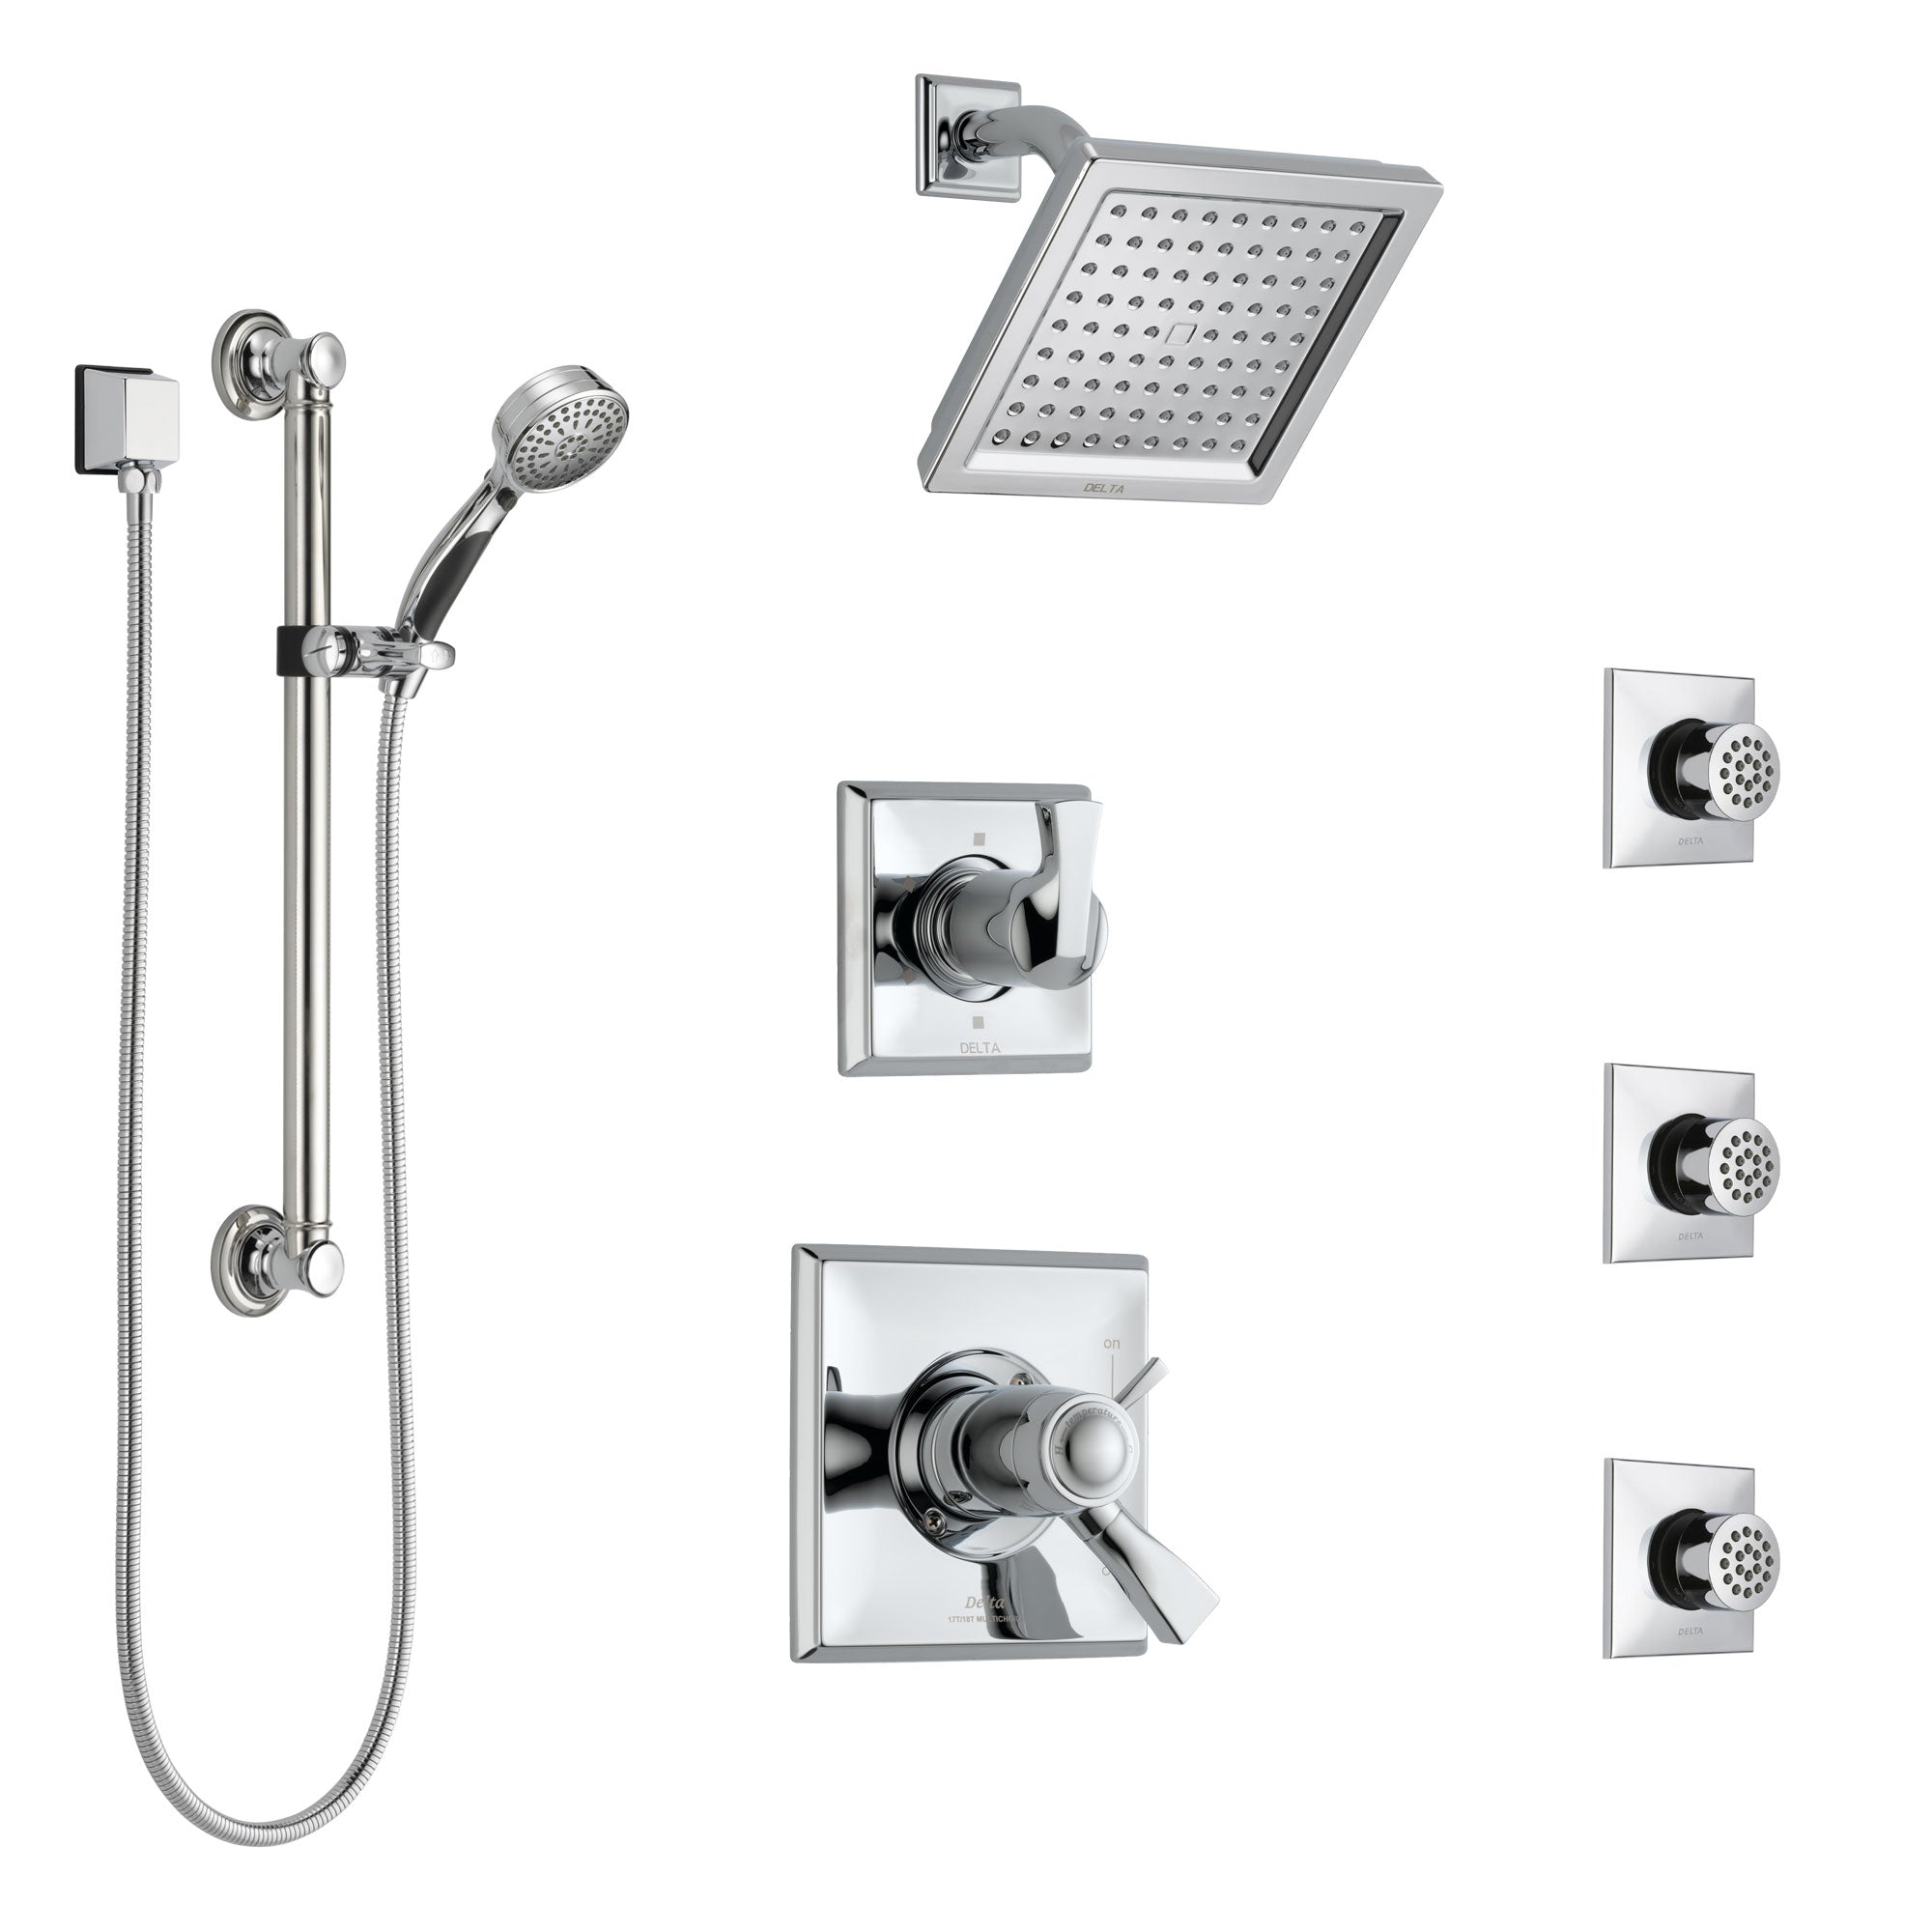 Delta Dryden Chrome Shower System with Dual Thermostatic Control, Diverter, Showerhead, 3 Body Sprays, and Hand Shower with Grab Bar SS17T25131